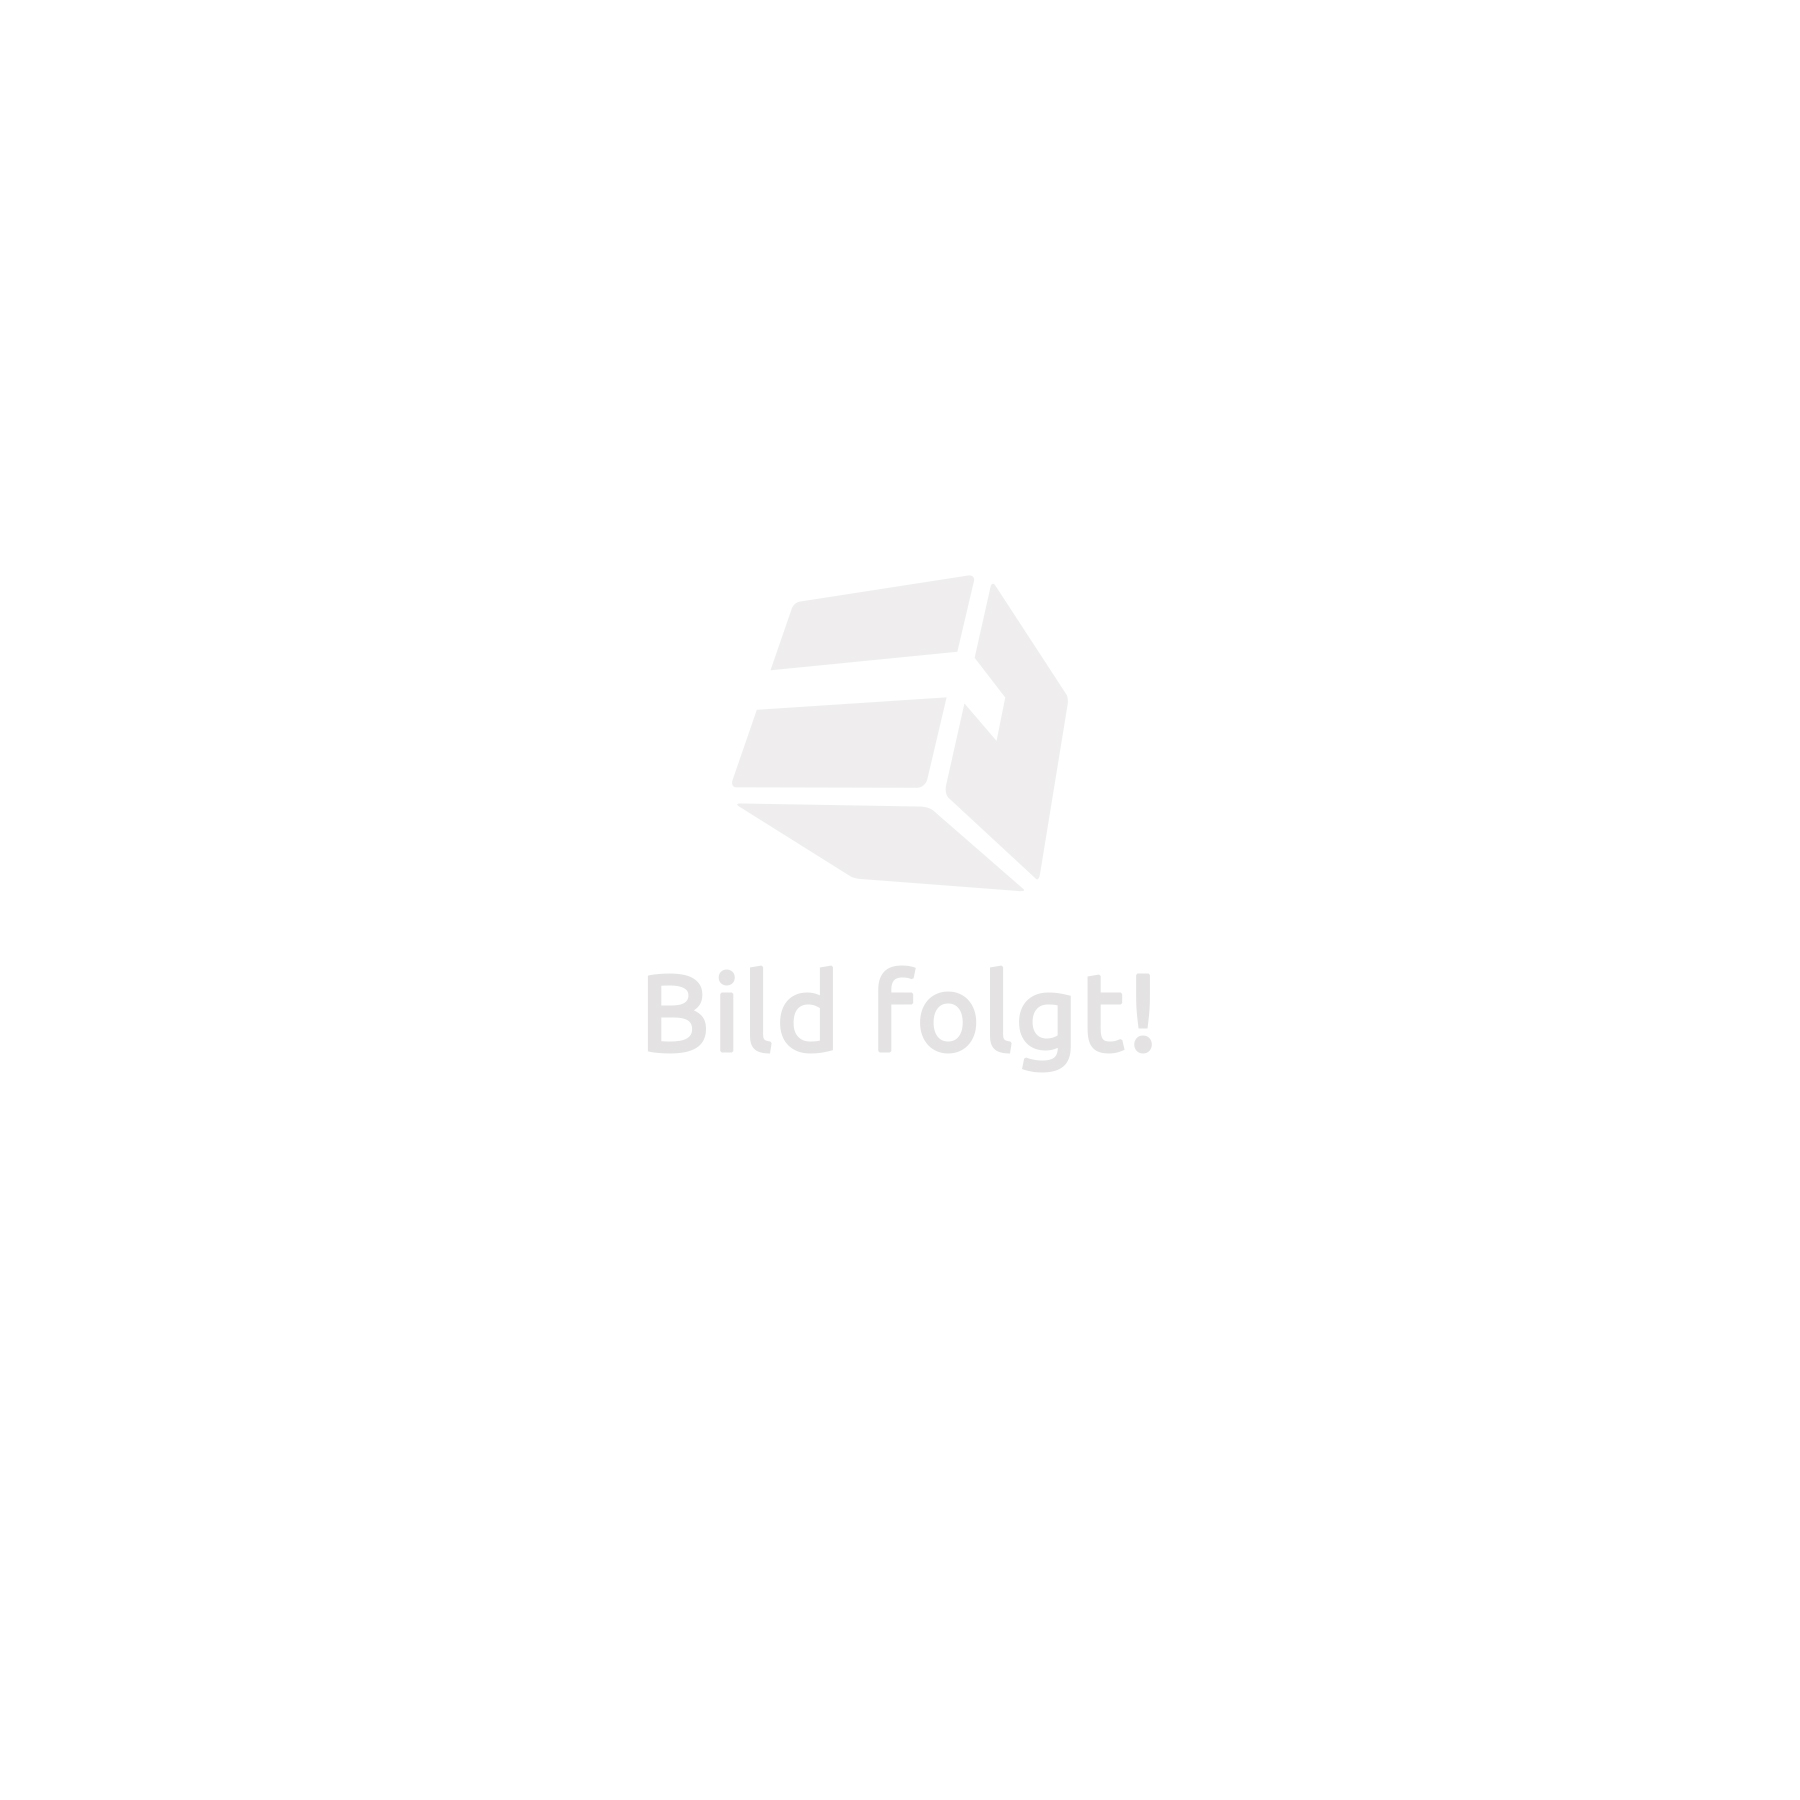 Table et banc pliant - Table de camping